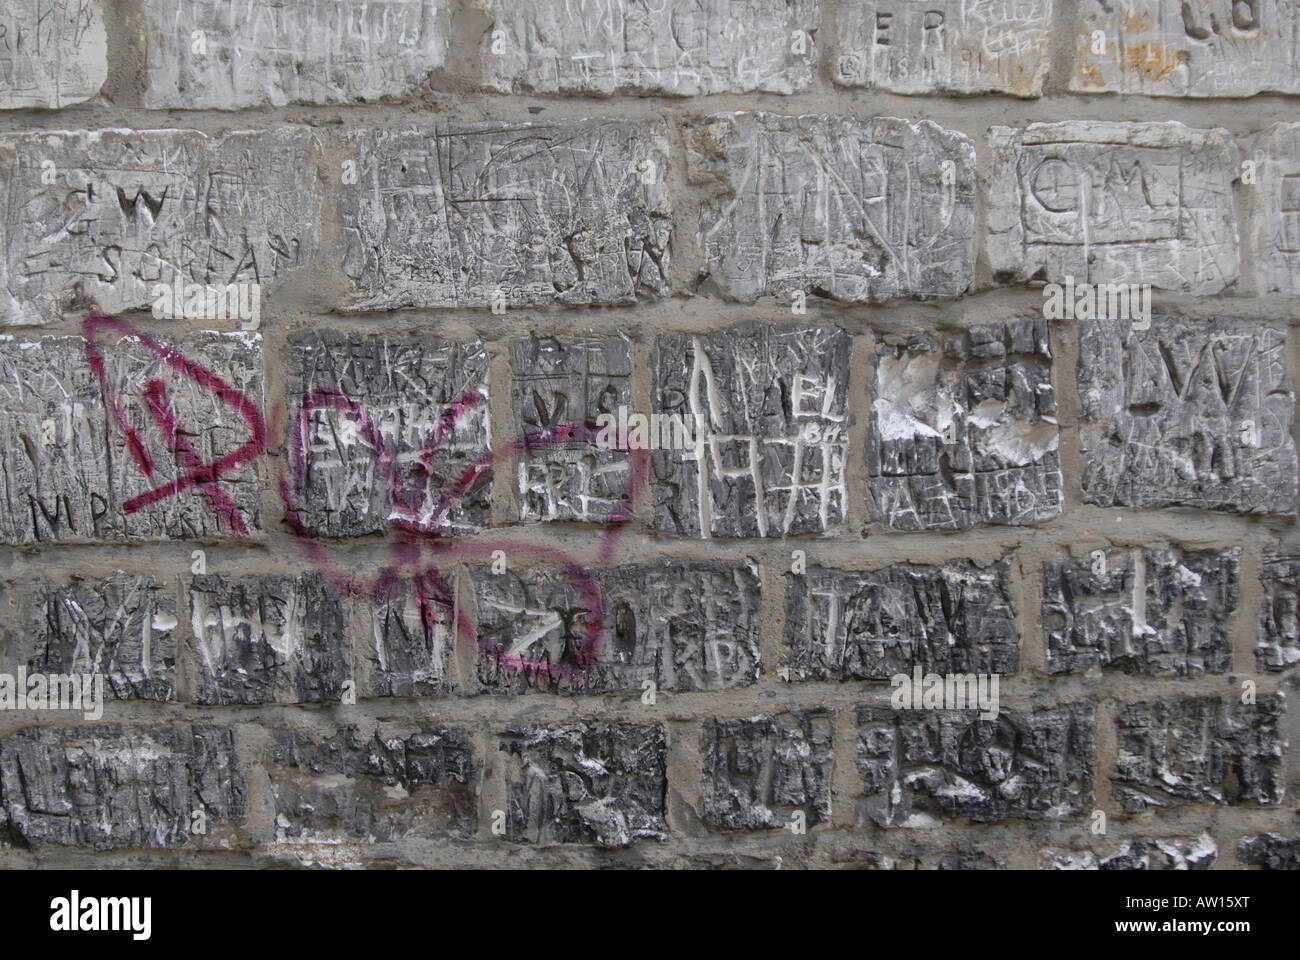 Grafitti carved into and sprayed upon an ancient chalk stone wall, Cheam, south London, Surrey, England - Stock Image